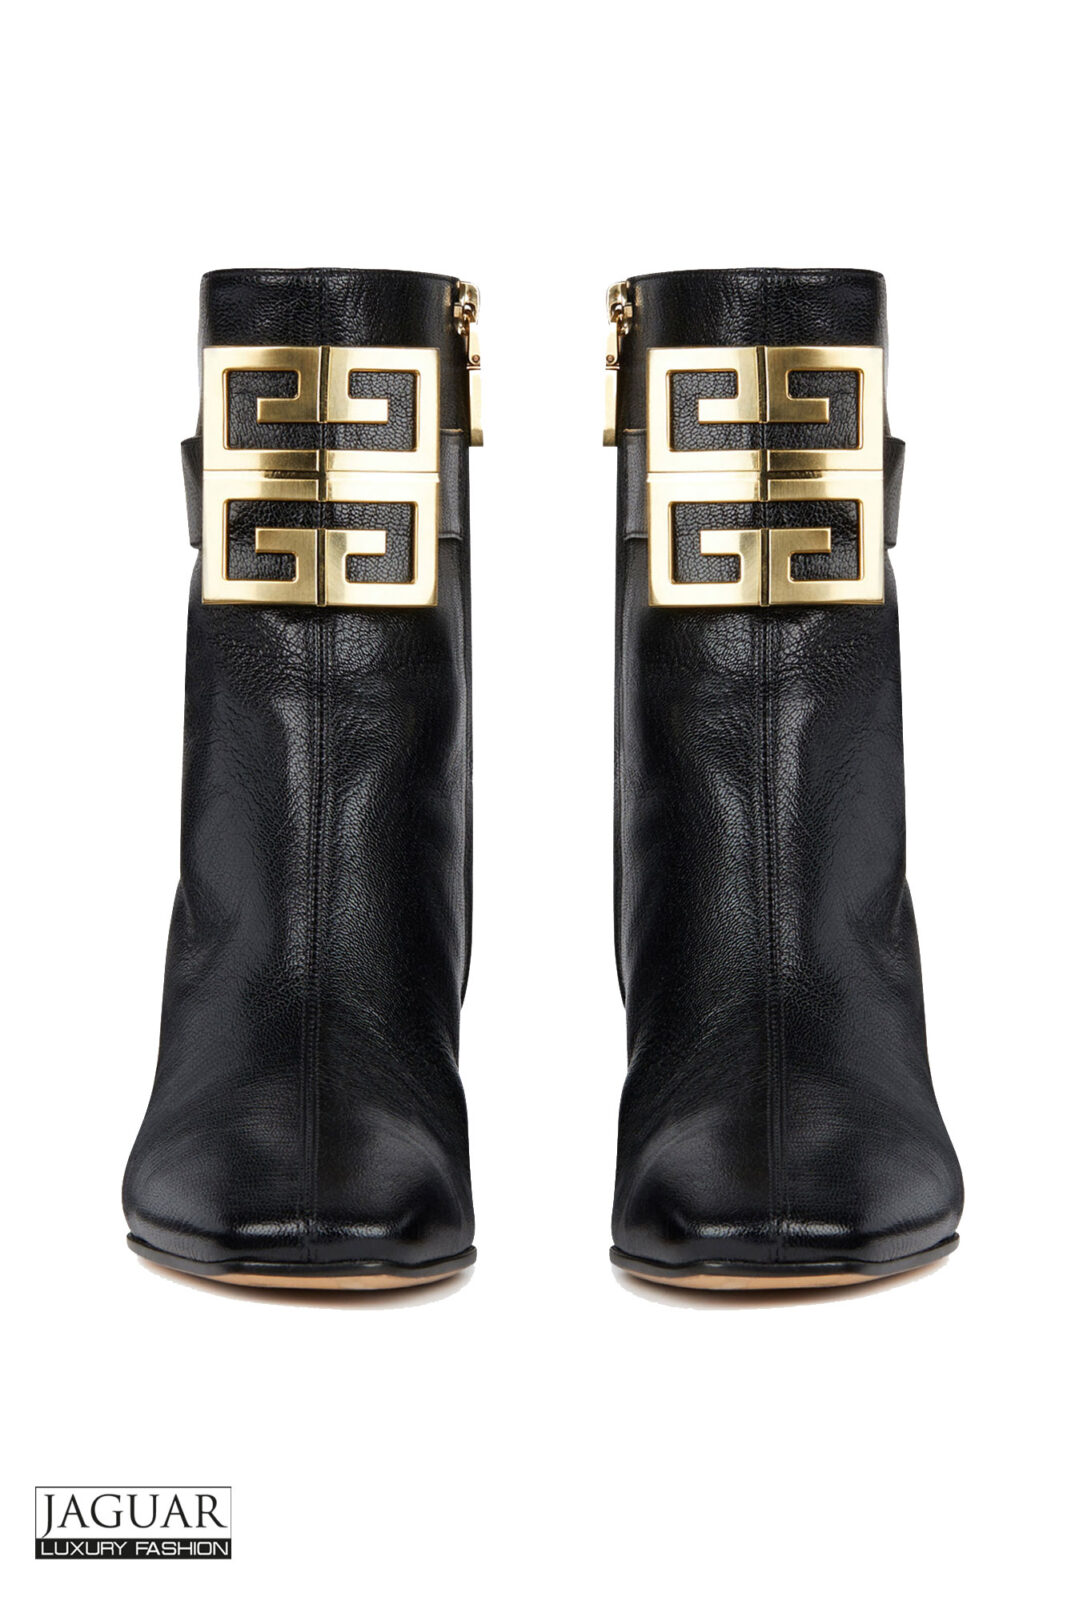 Givenchy 4G boots